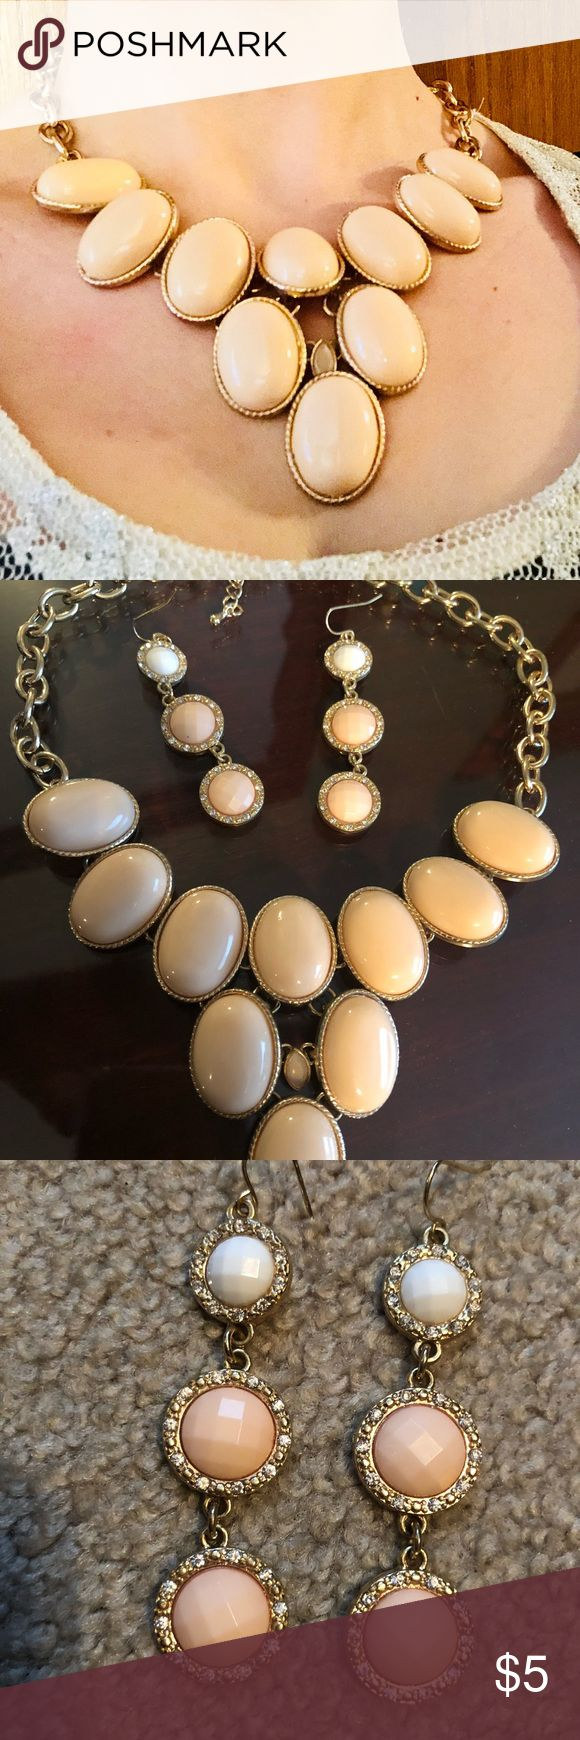 Womens necklace and earring set Gold & nude necklace earrings are gold nude & white with diamond details. Very elegant! Jewelry Necklaces #jewelrynecklaces